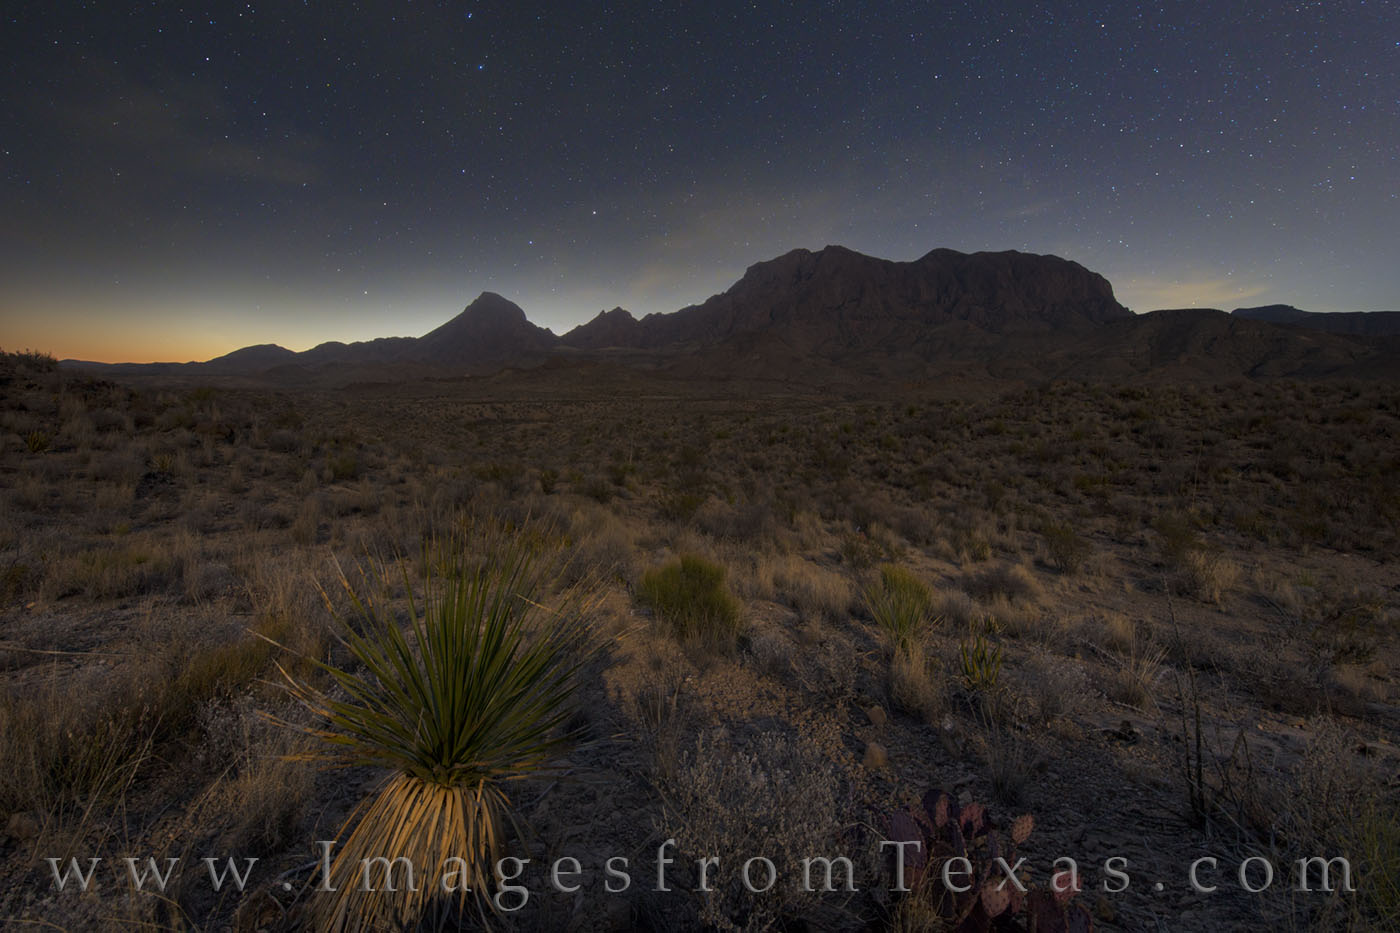 big bend, chisos mountains, full moon, dawn, stars, night, chihuahuan desert, yucca, photo